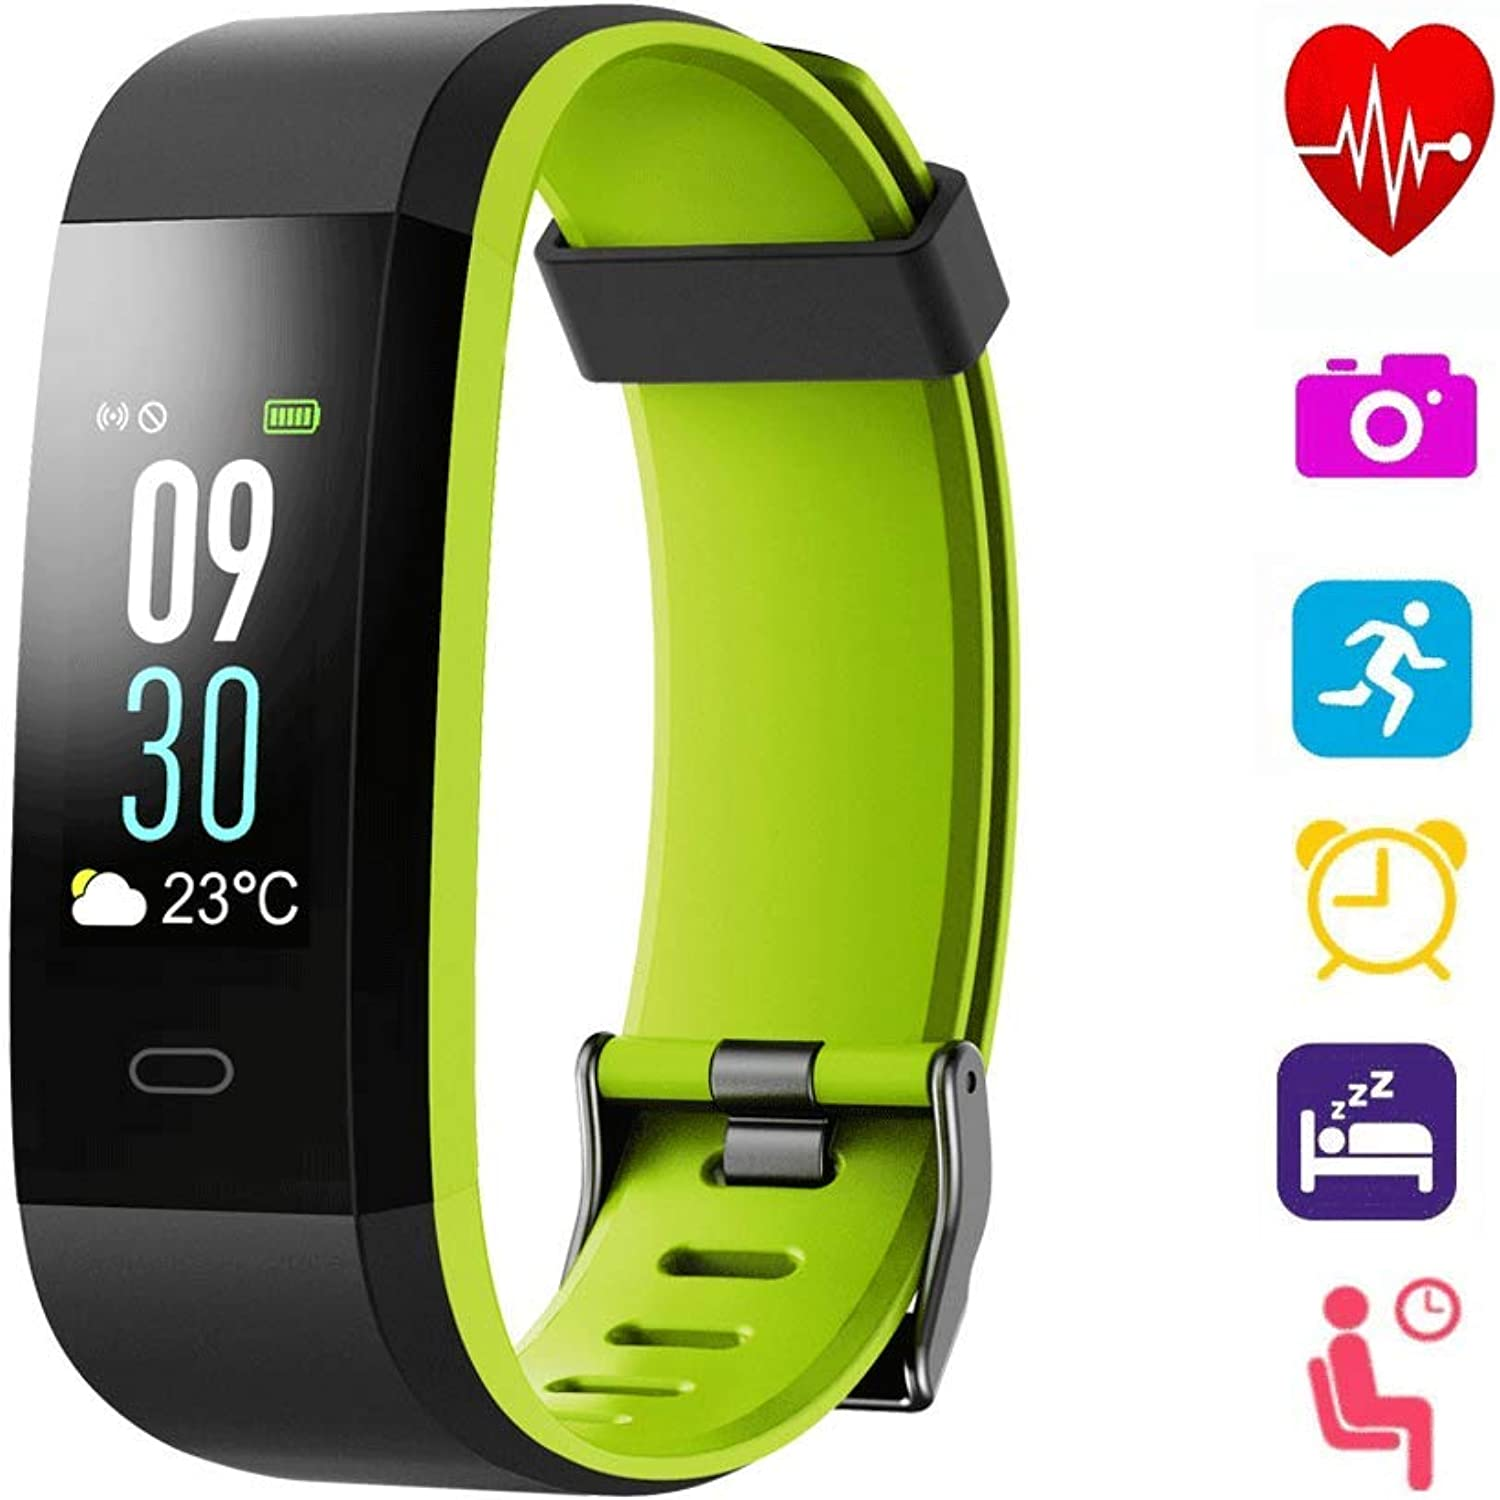 "Fitness Tracker, blueetooth 4.0 Activity Tracker Watch with 0.96""OLED color Screen and Waterproof Heart Rate Monitor, Pedometer, Sleep & GPS Tracking for Kids Women and Men, Android & iOS Smart Phones"